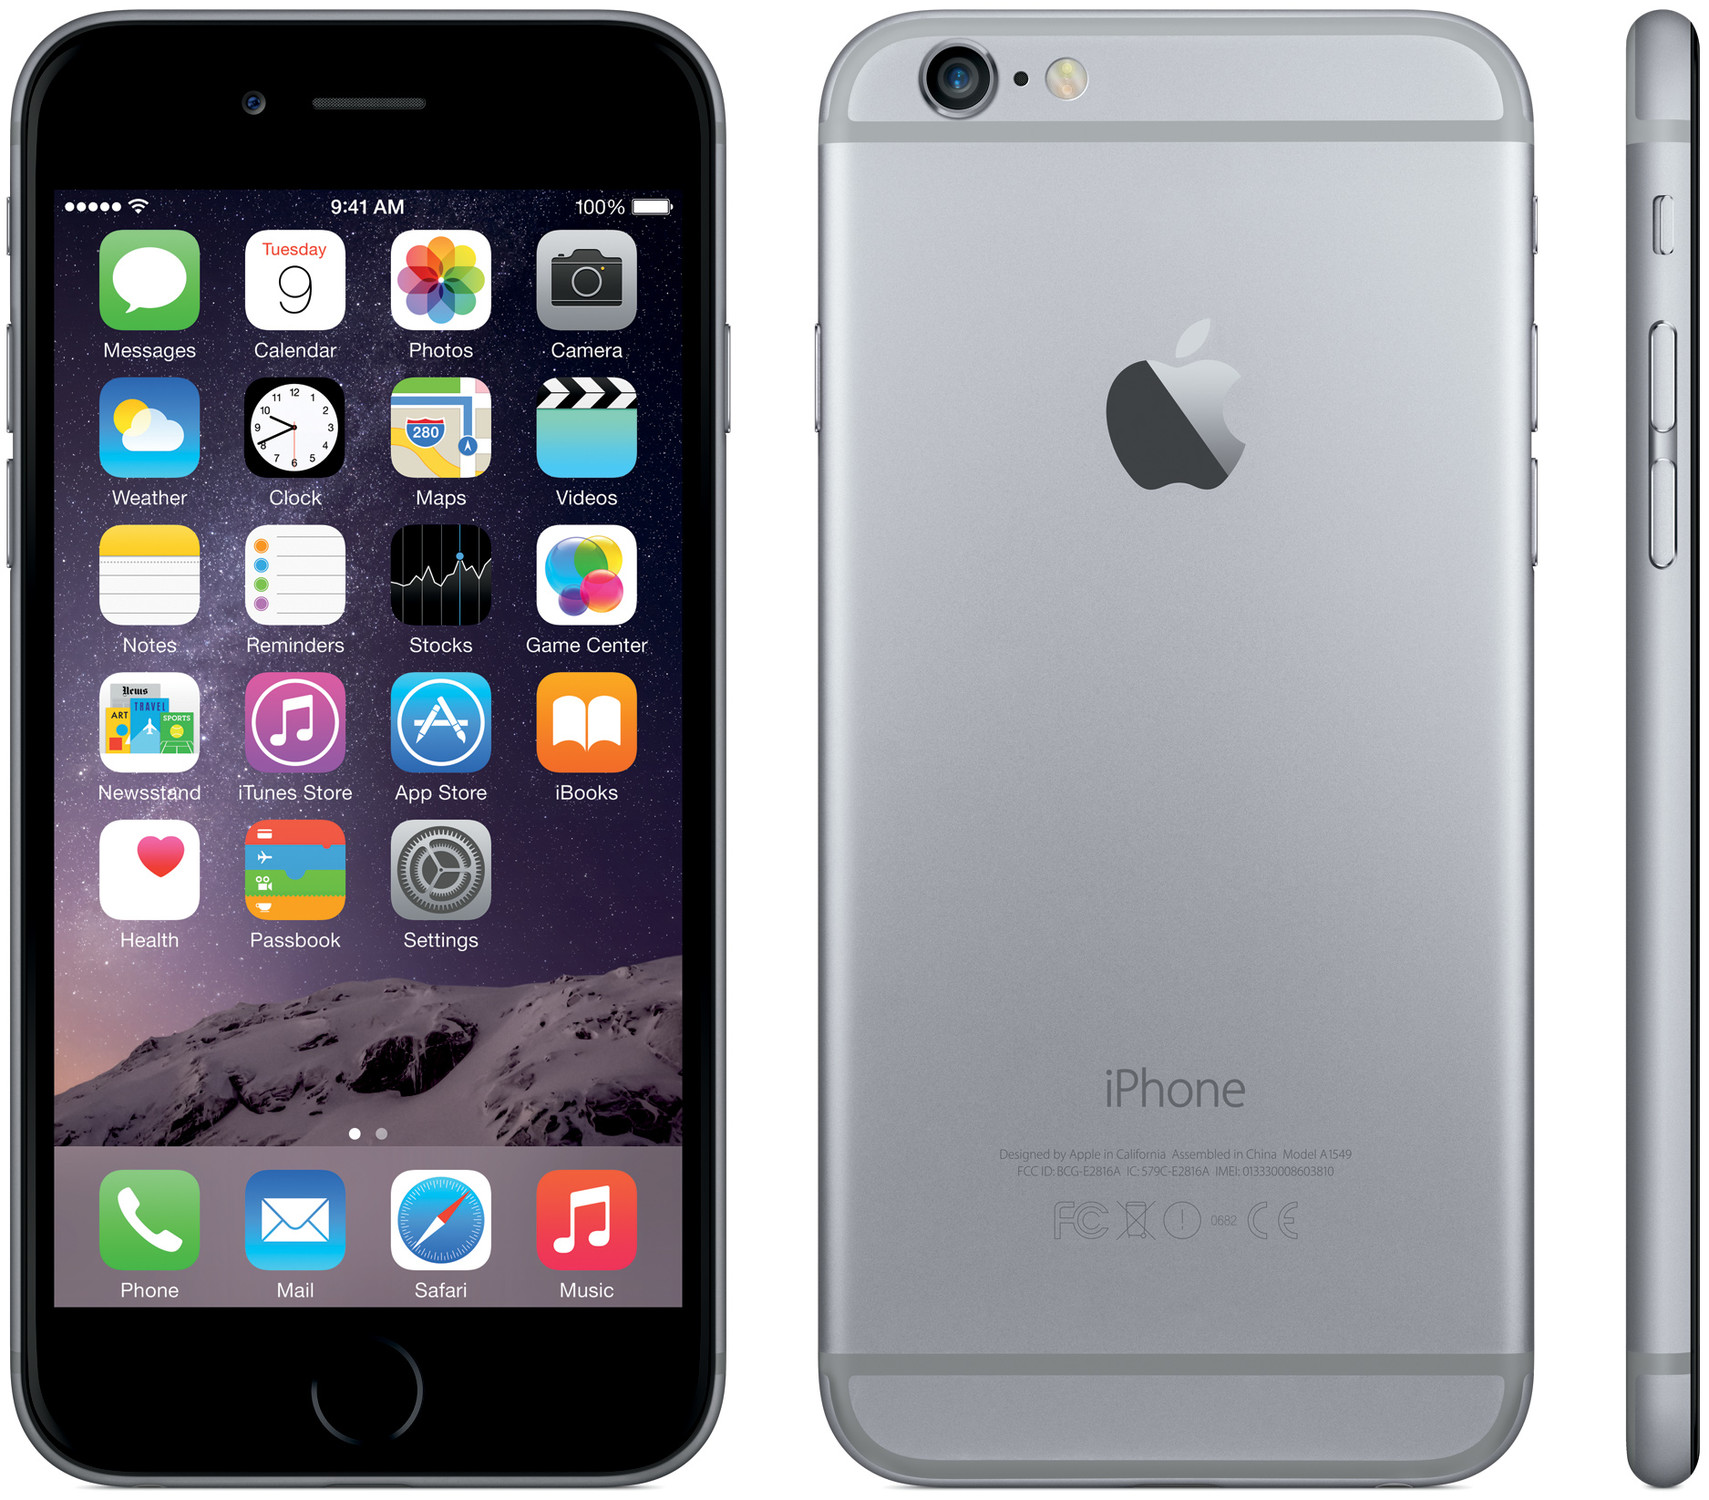 apple iphone 6 plus t mobile 16gb specs and price phonegg. Black Bedroom Furniture Sets. Home Design Ideas